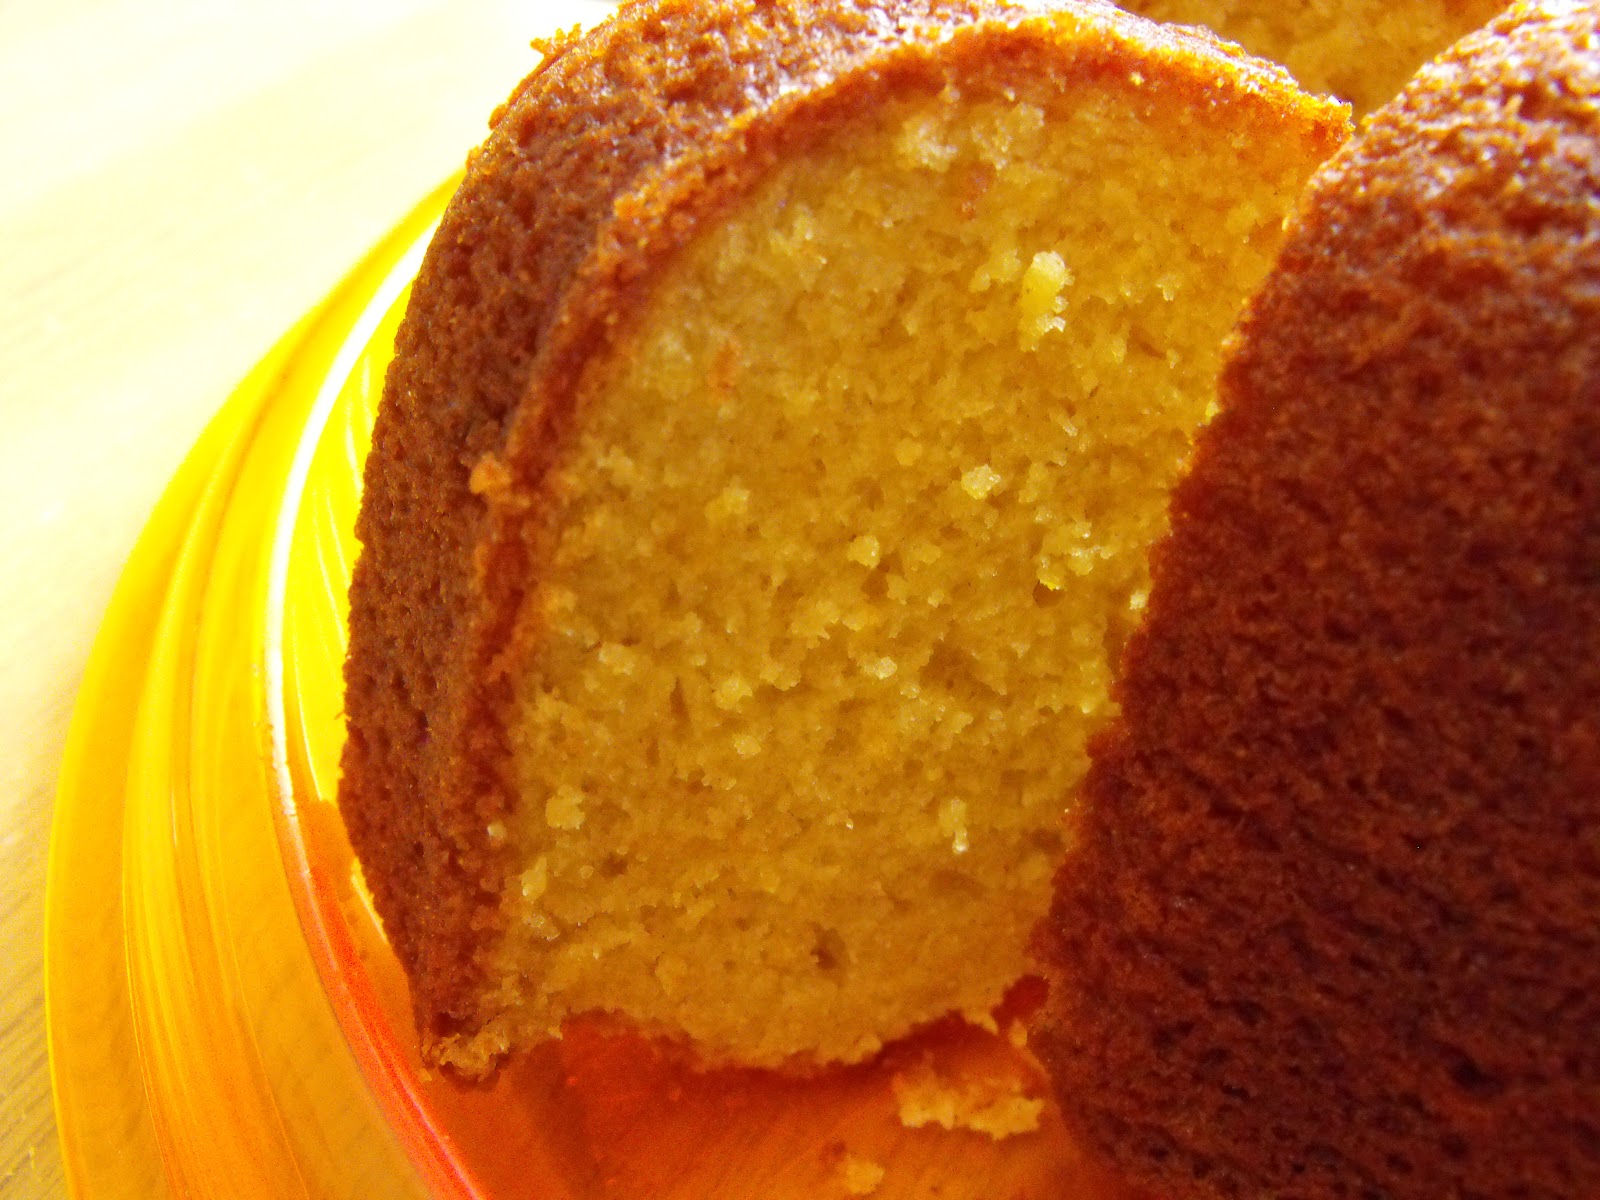 ... cake orange walnut cake orange olive oil cake orange pound cake